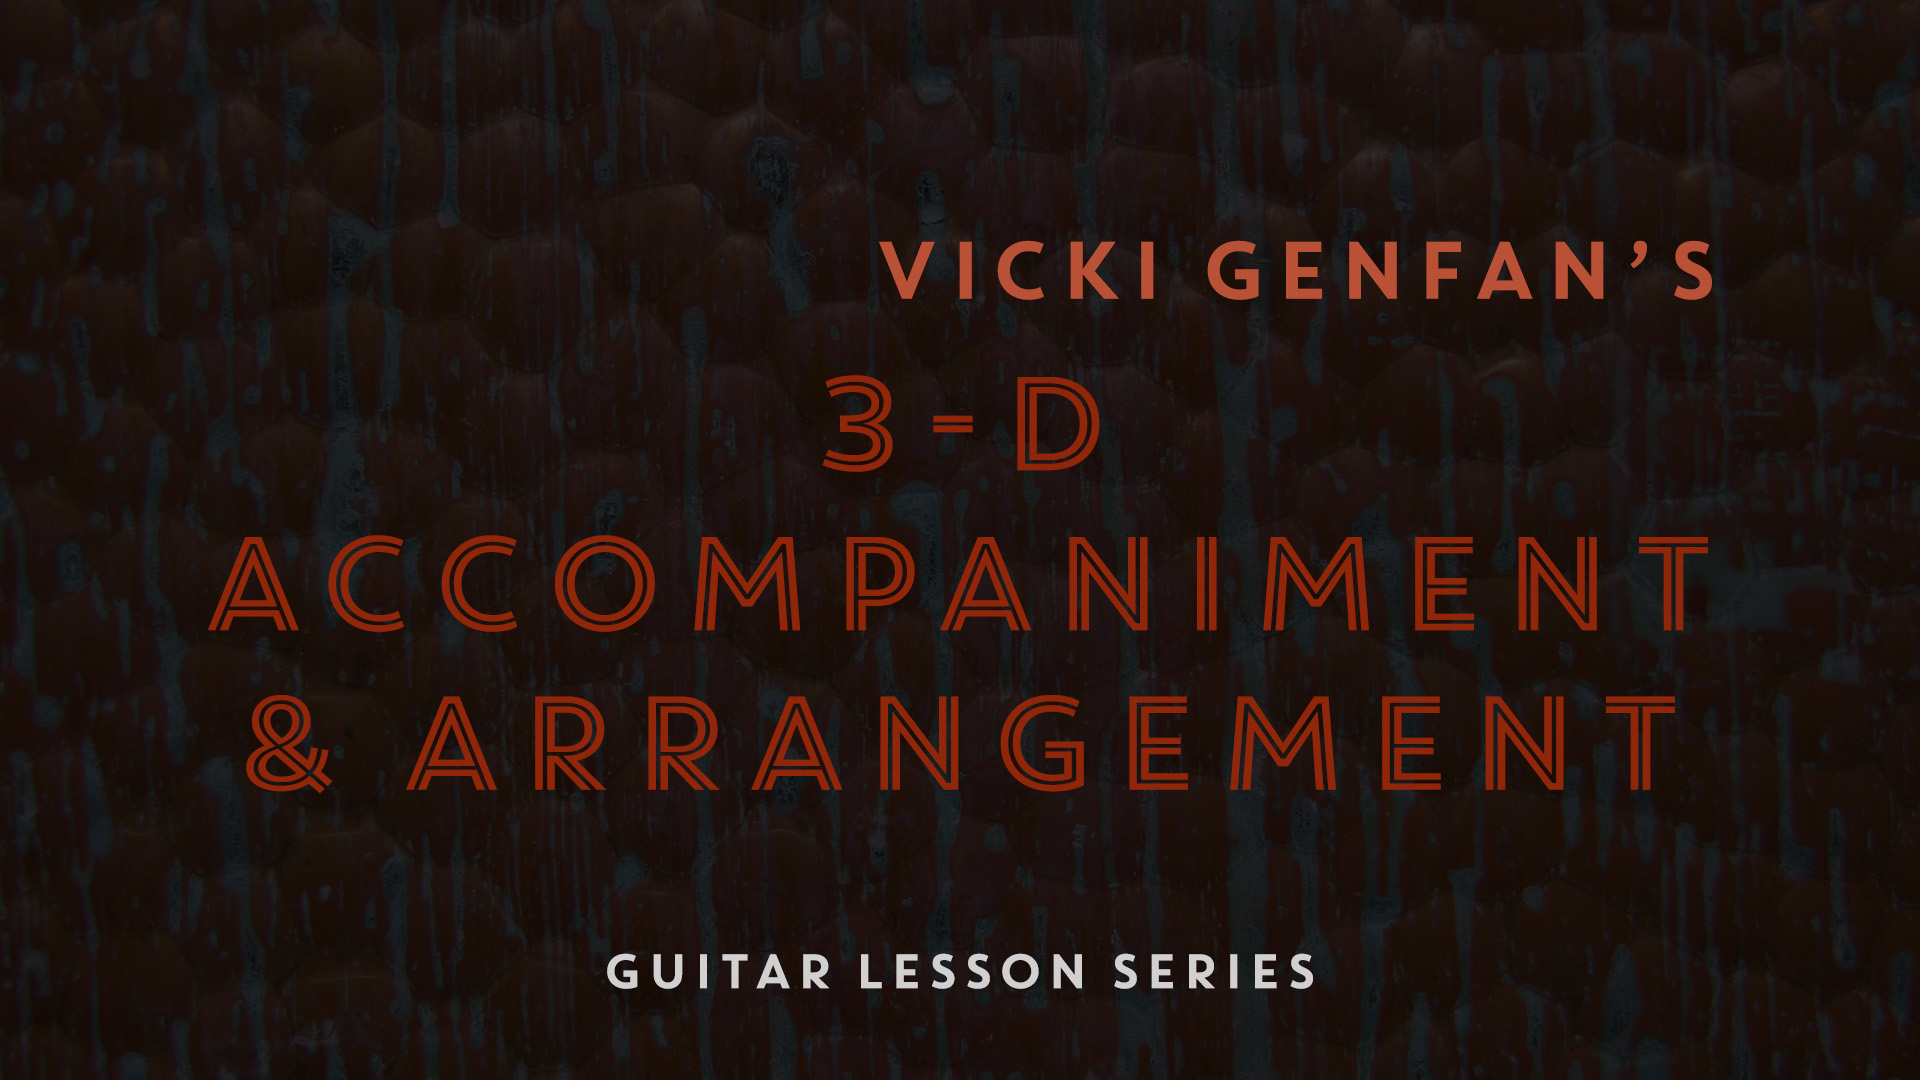 3-D Accompaniment & Arrangement